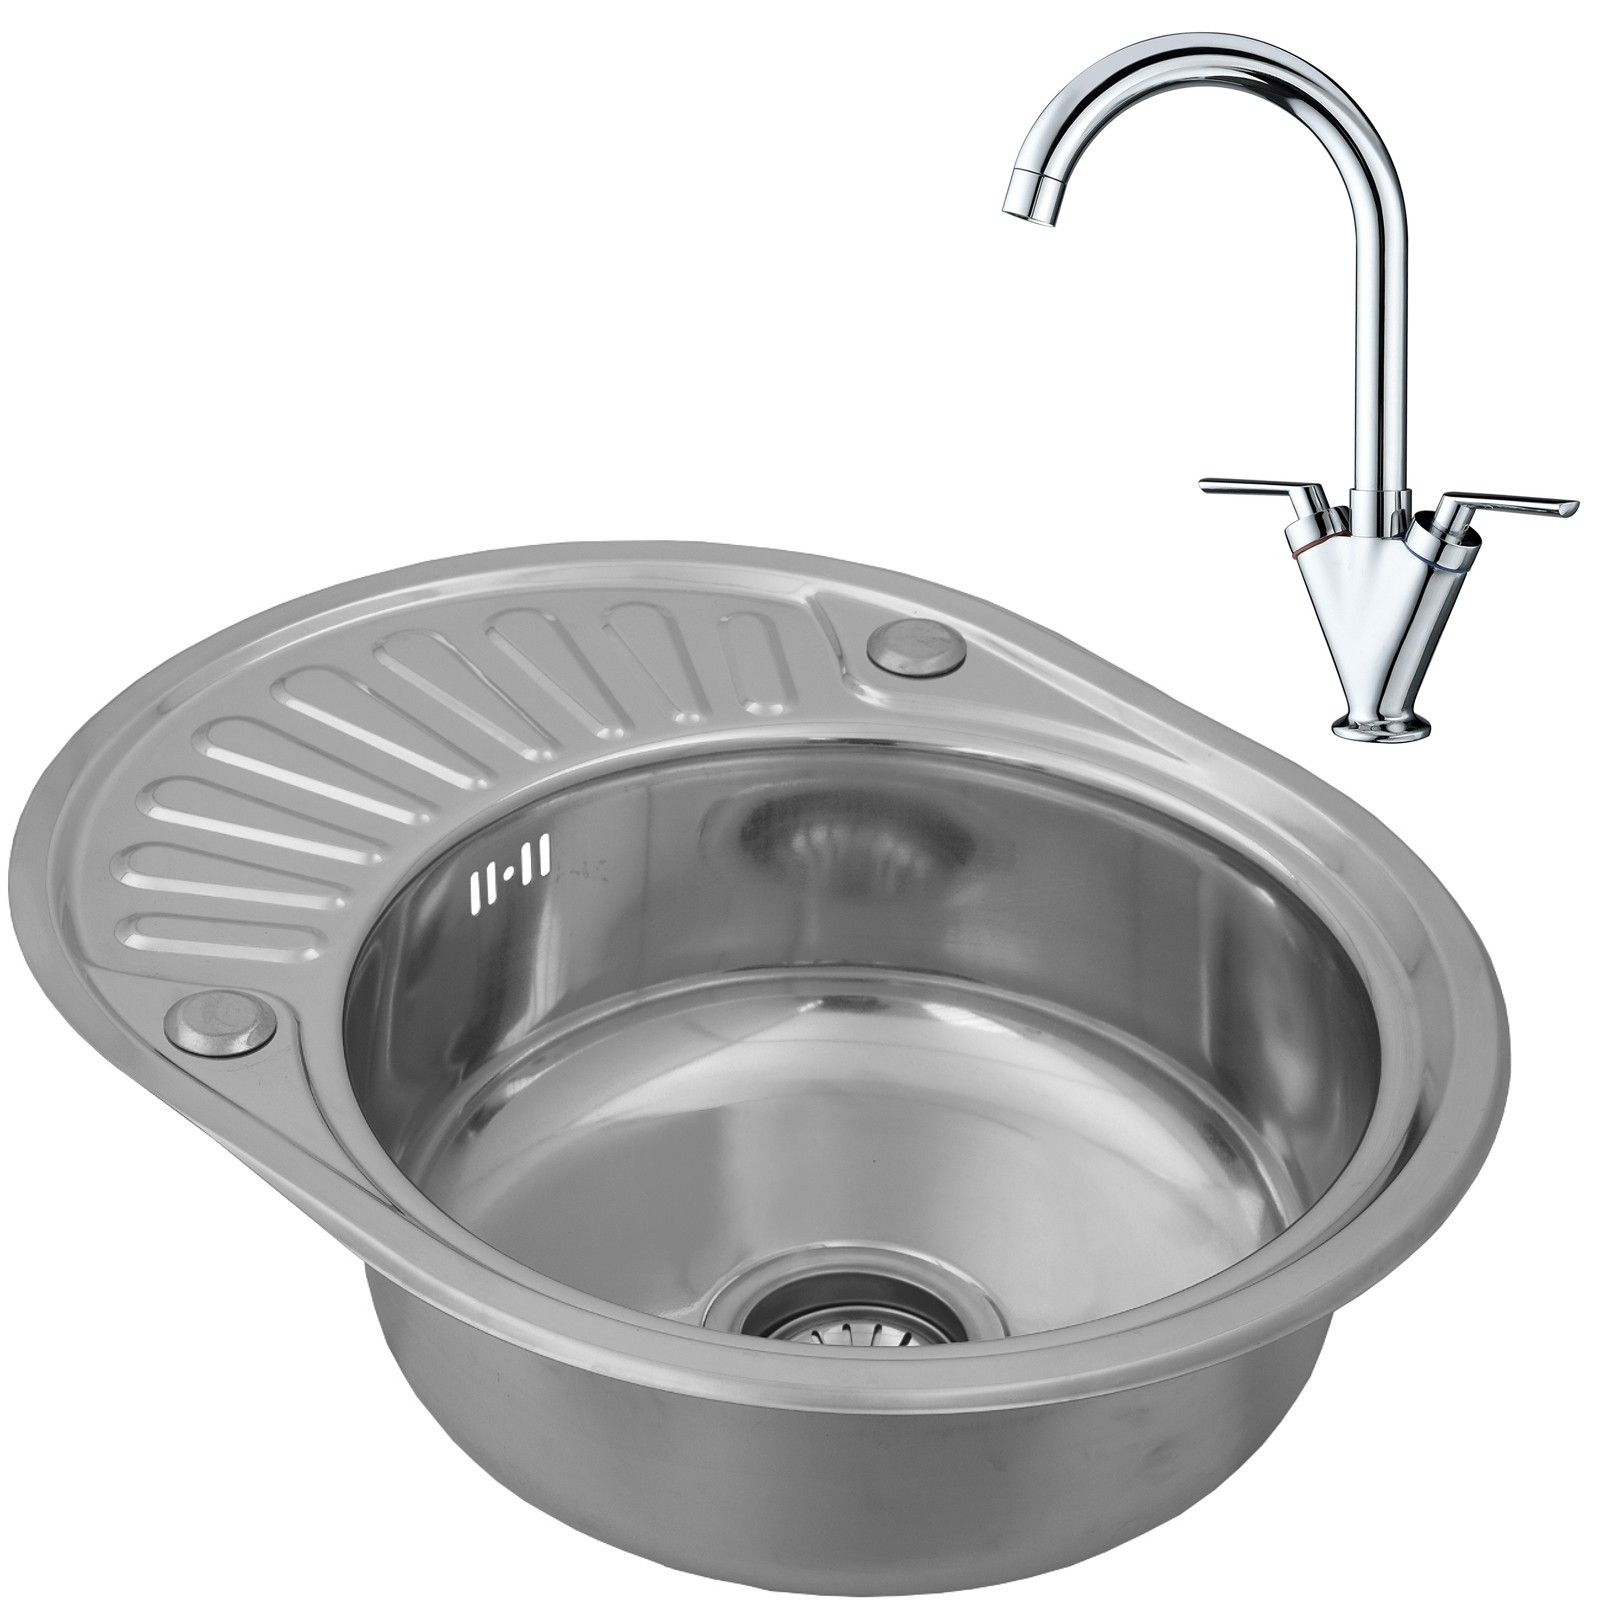 Compact Stainless Steel 1.0 Bowl Inset Round Kitchen Sink With Drainer And  Tap